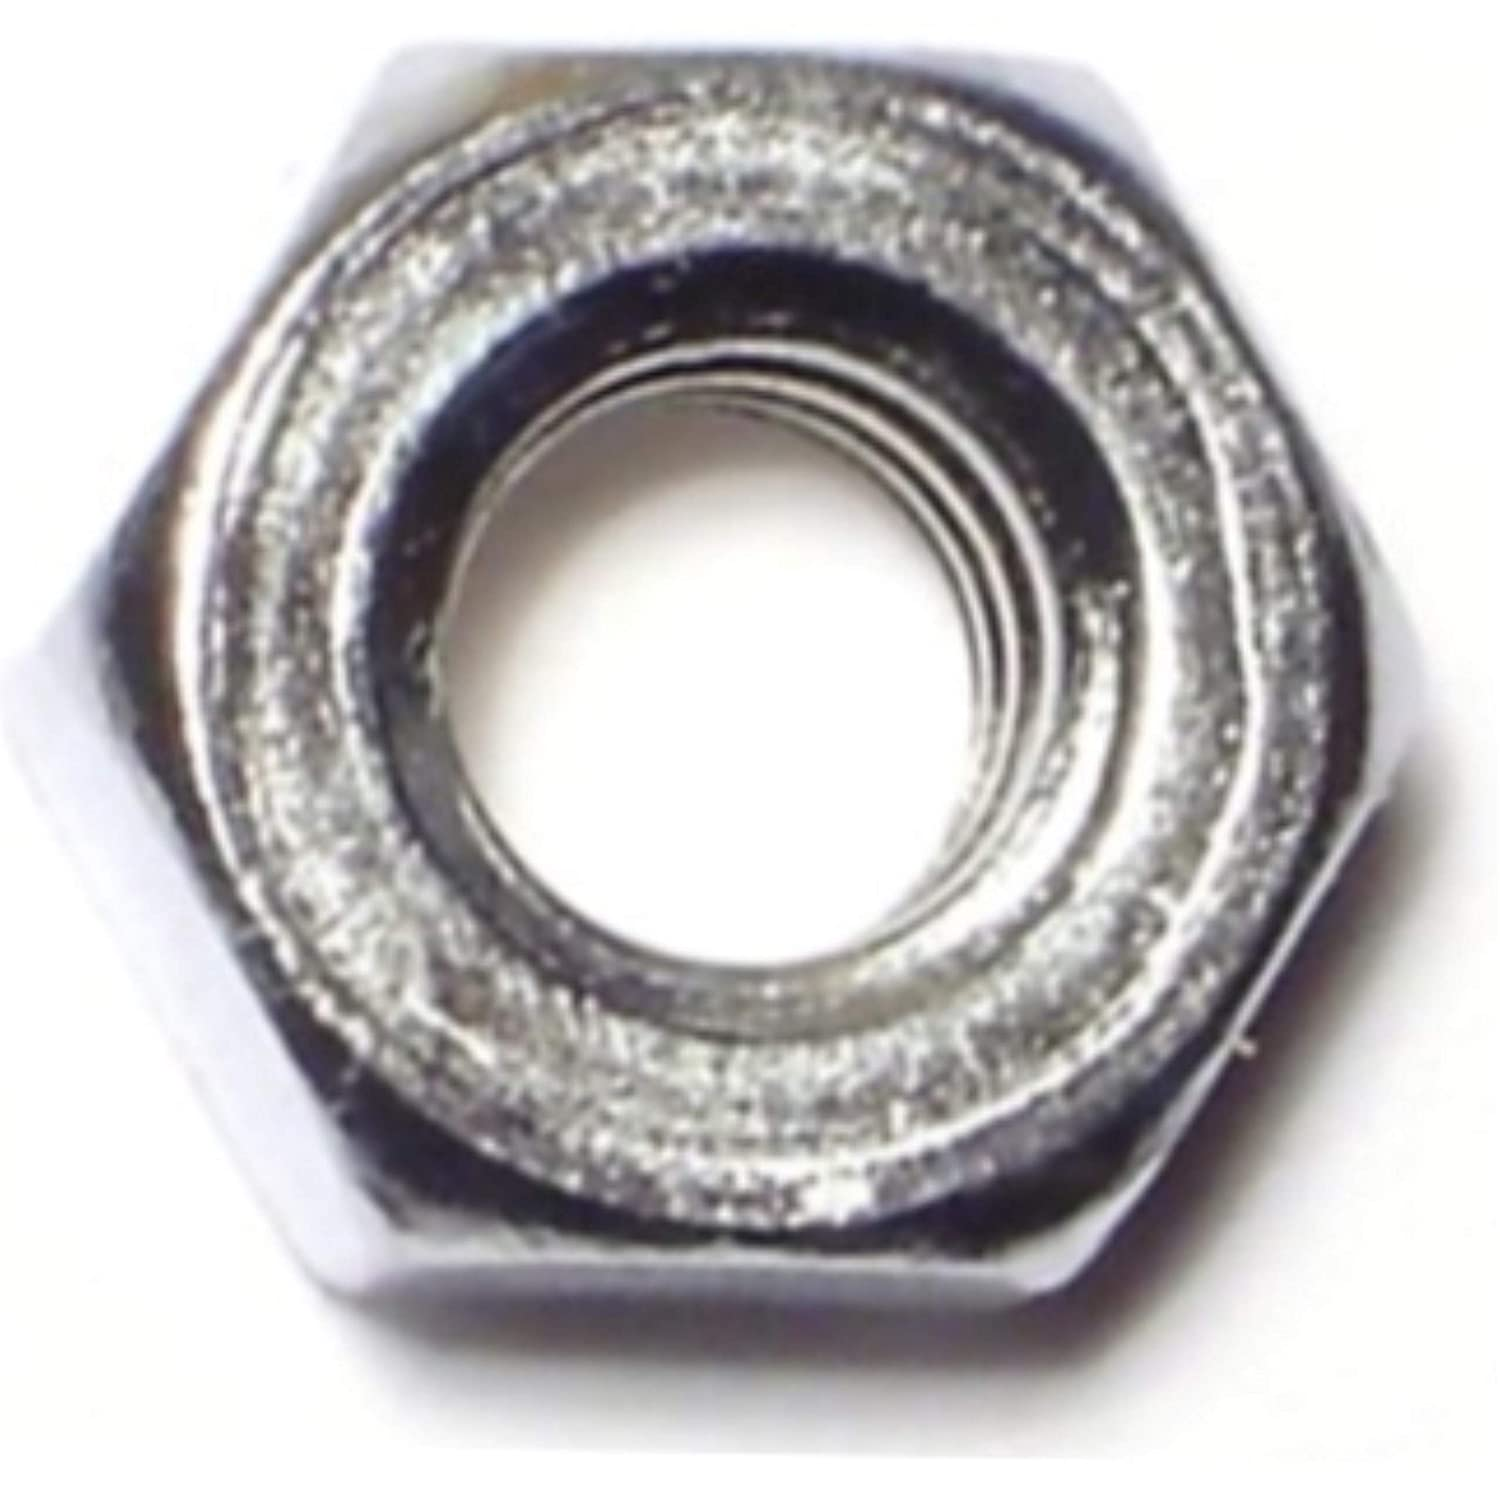 Piece-40 Hard-to-Find Fastener 014973134129 Finished Hex Nuts 1//4-20